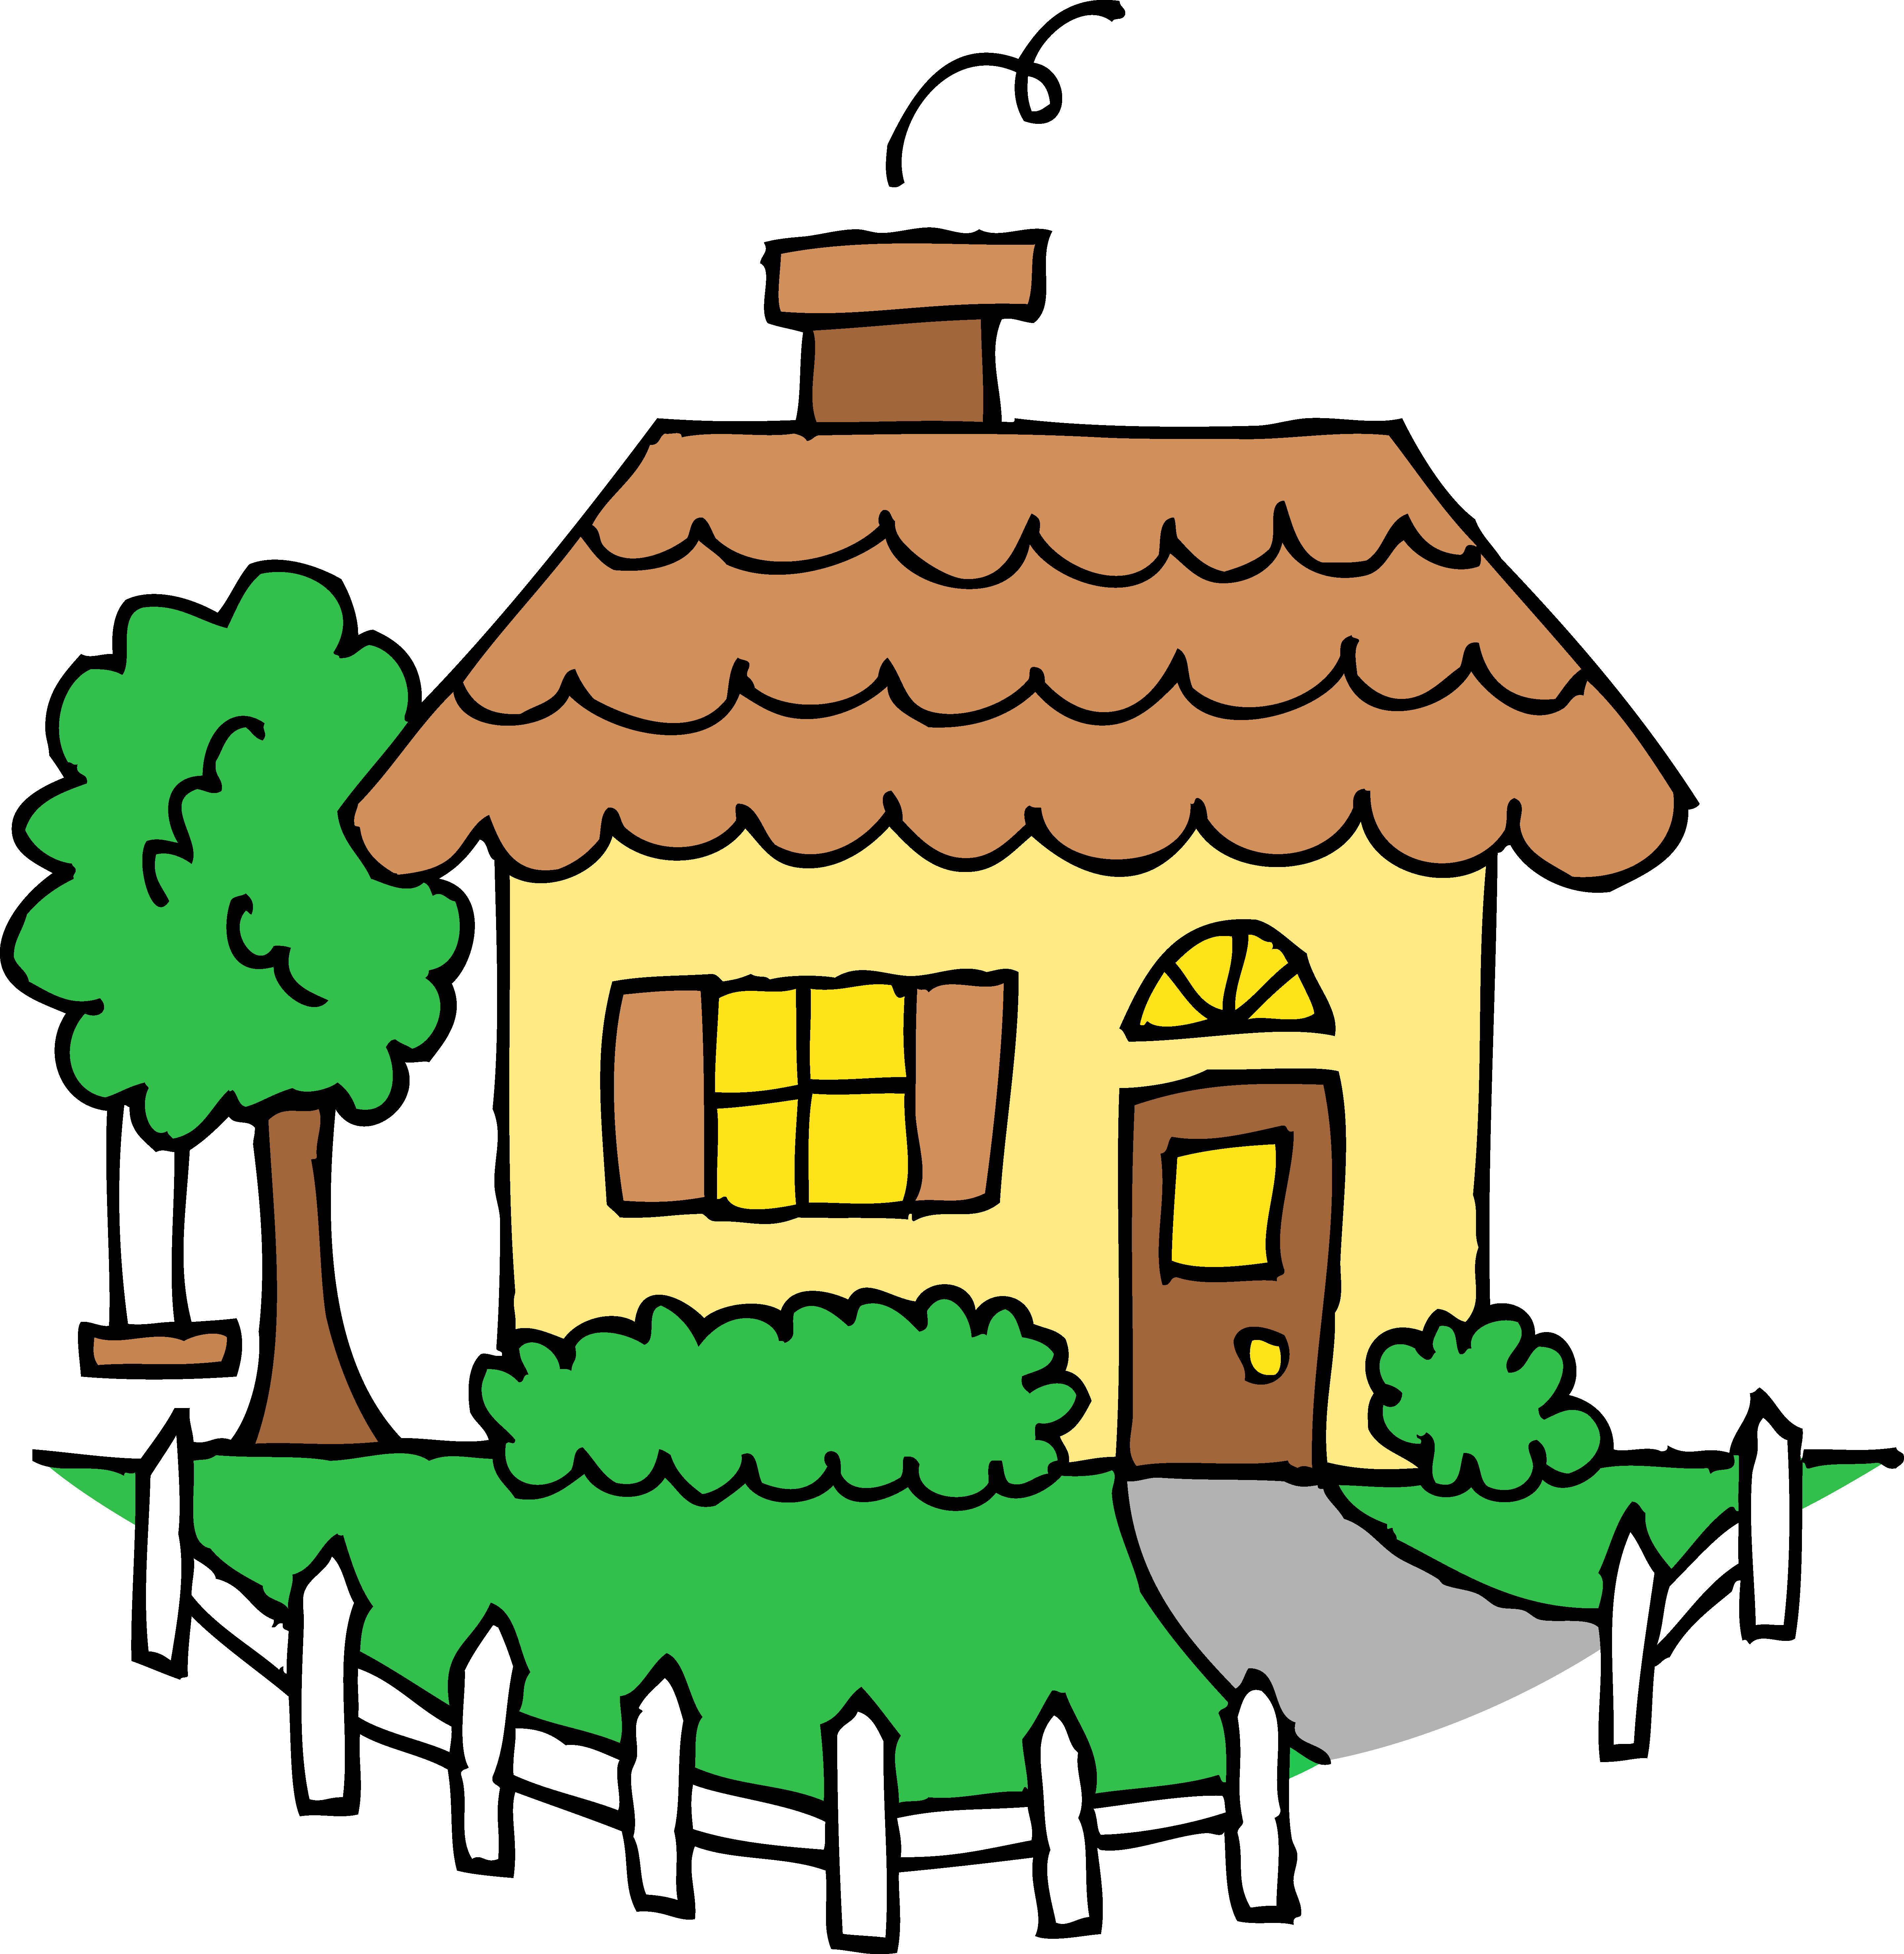 School house clipart free clipart panda free clipart for Cute house pictures